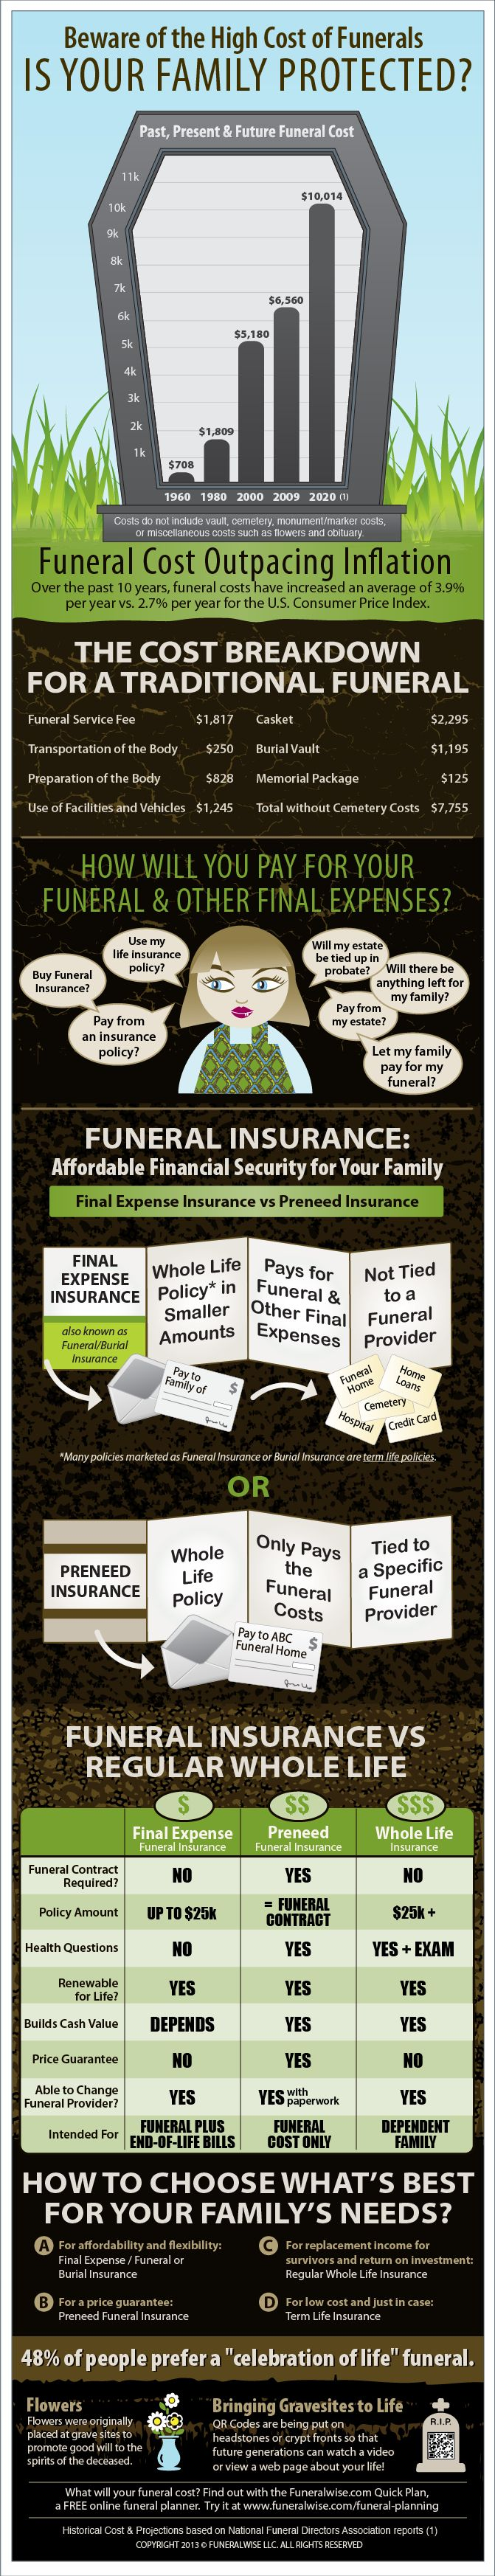 Beware the High Cost of Funerals. Is Your Family Protected? #funeral #infographic